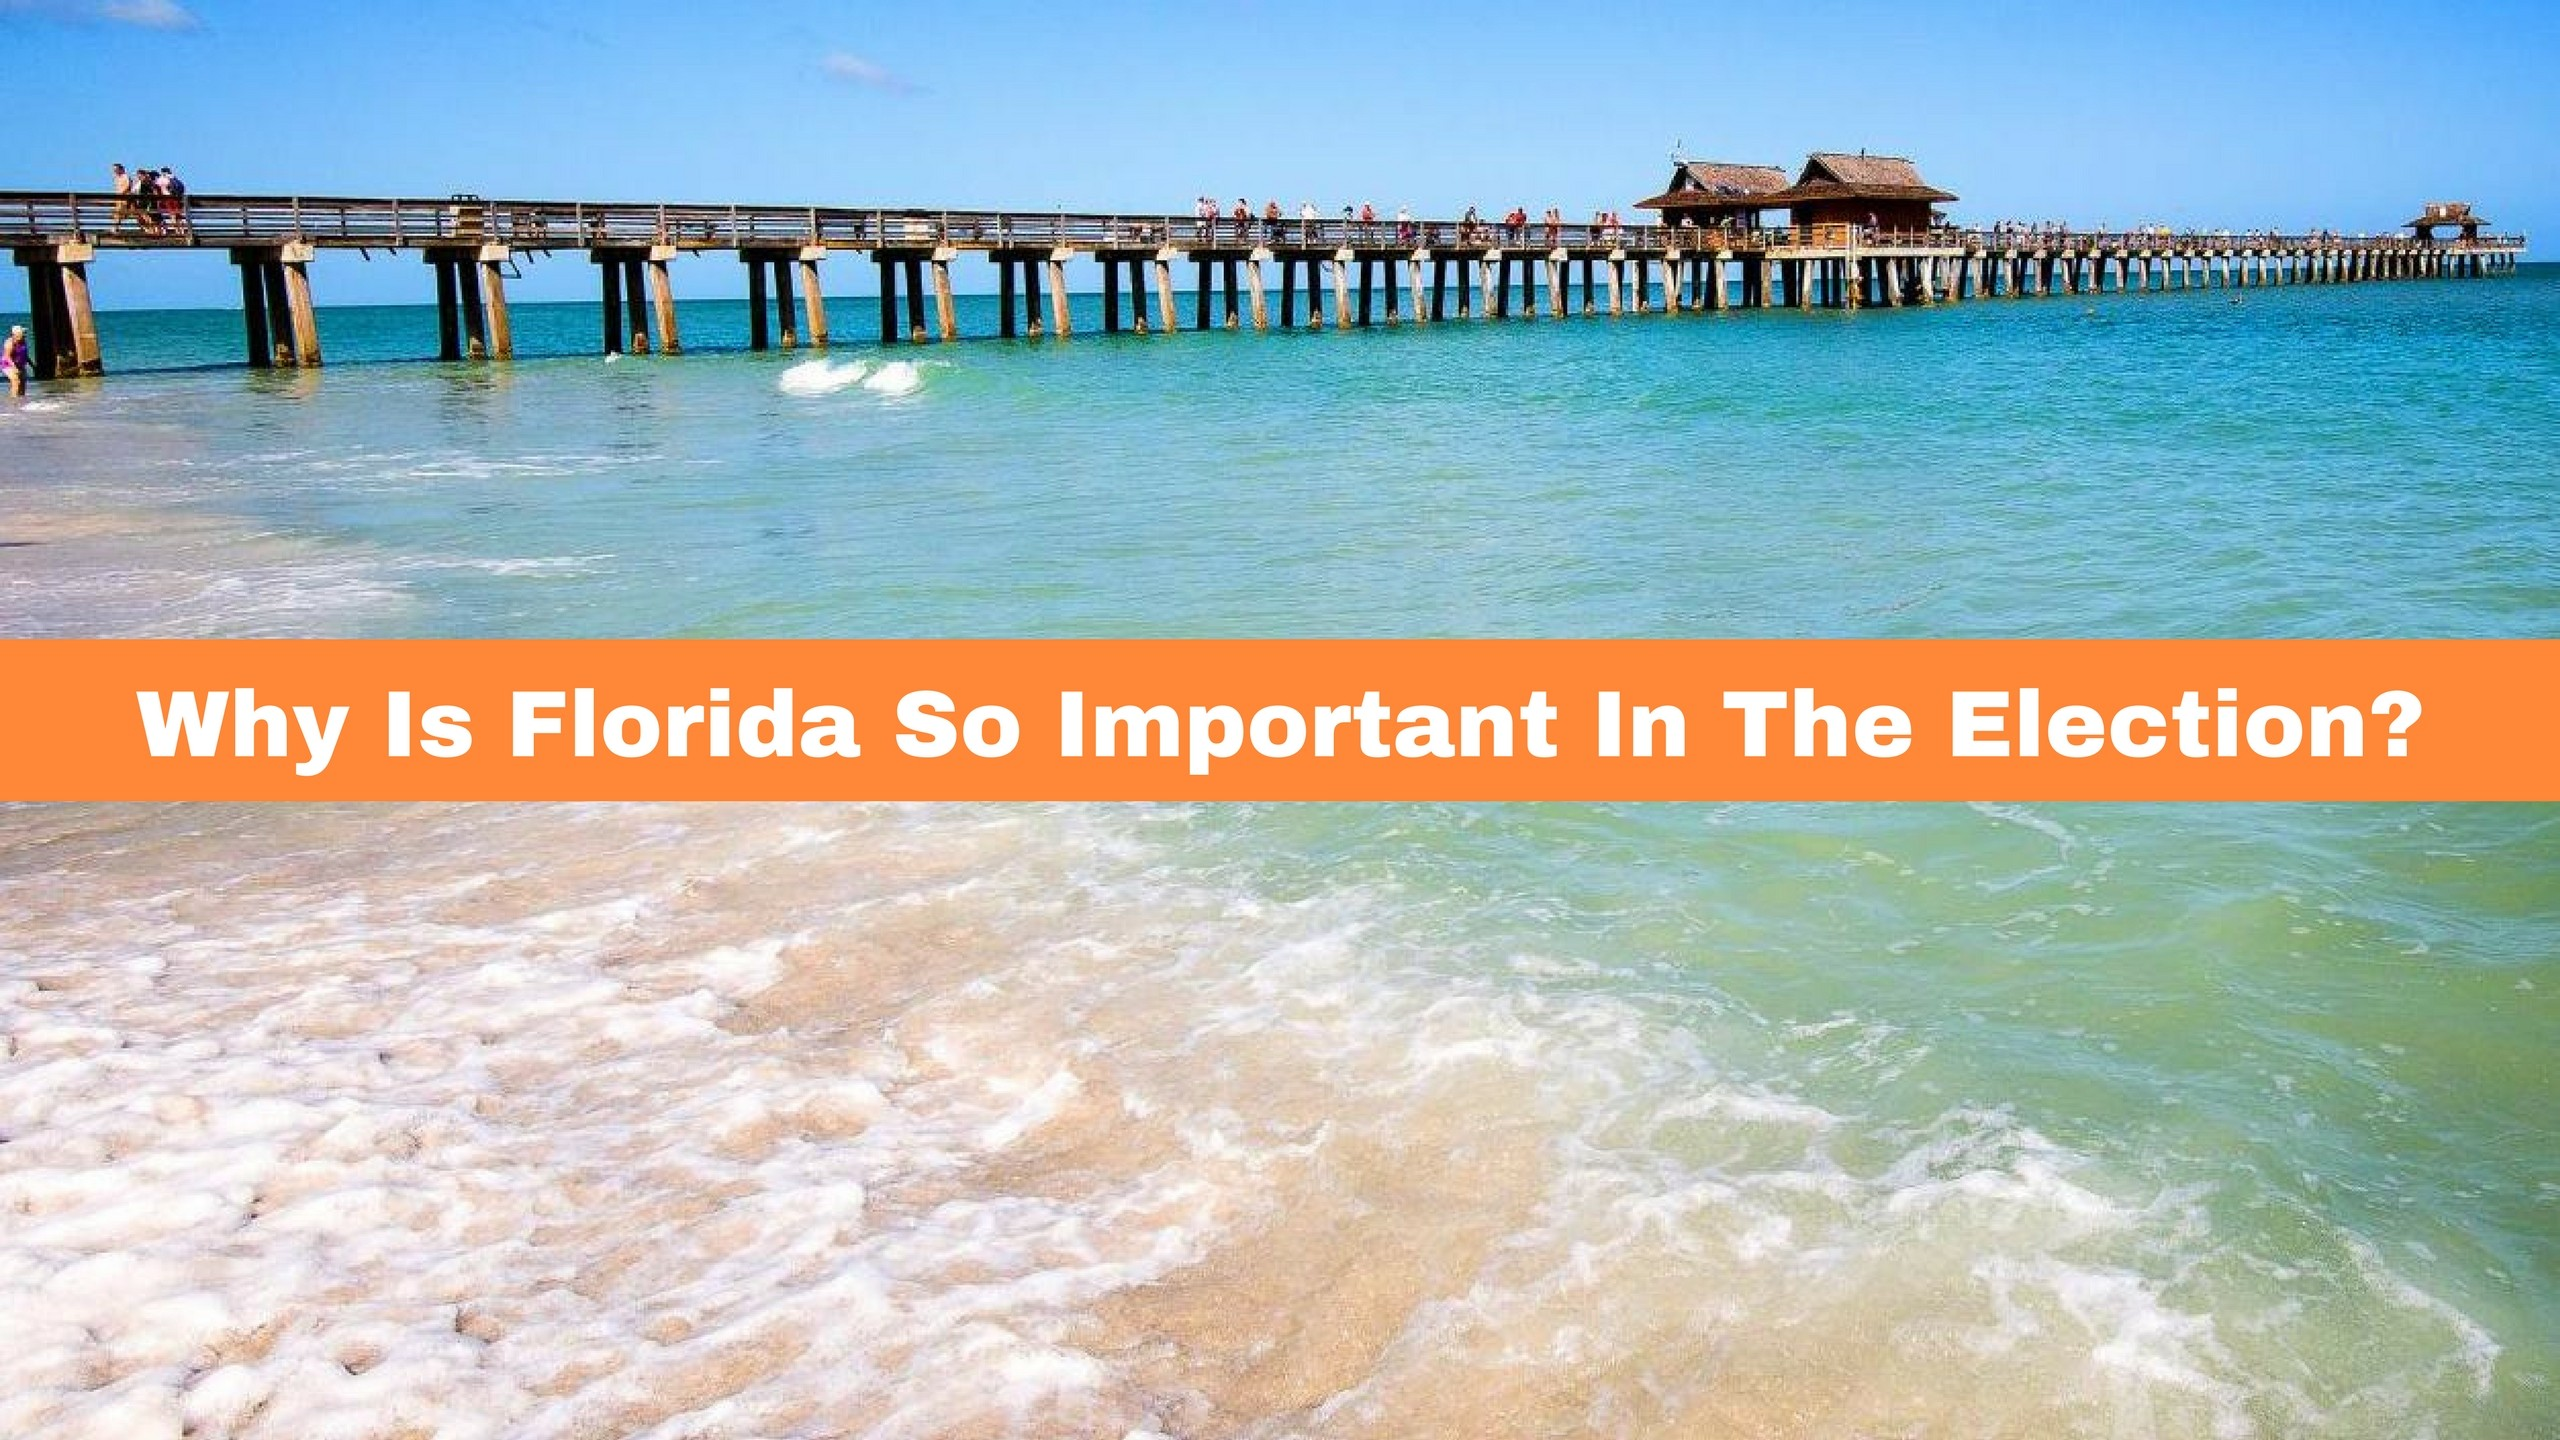 Why Is Florida So Important In The Election?